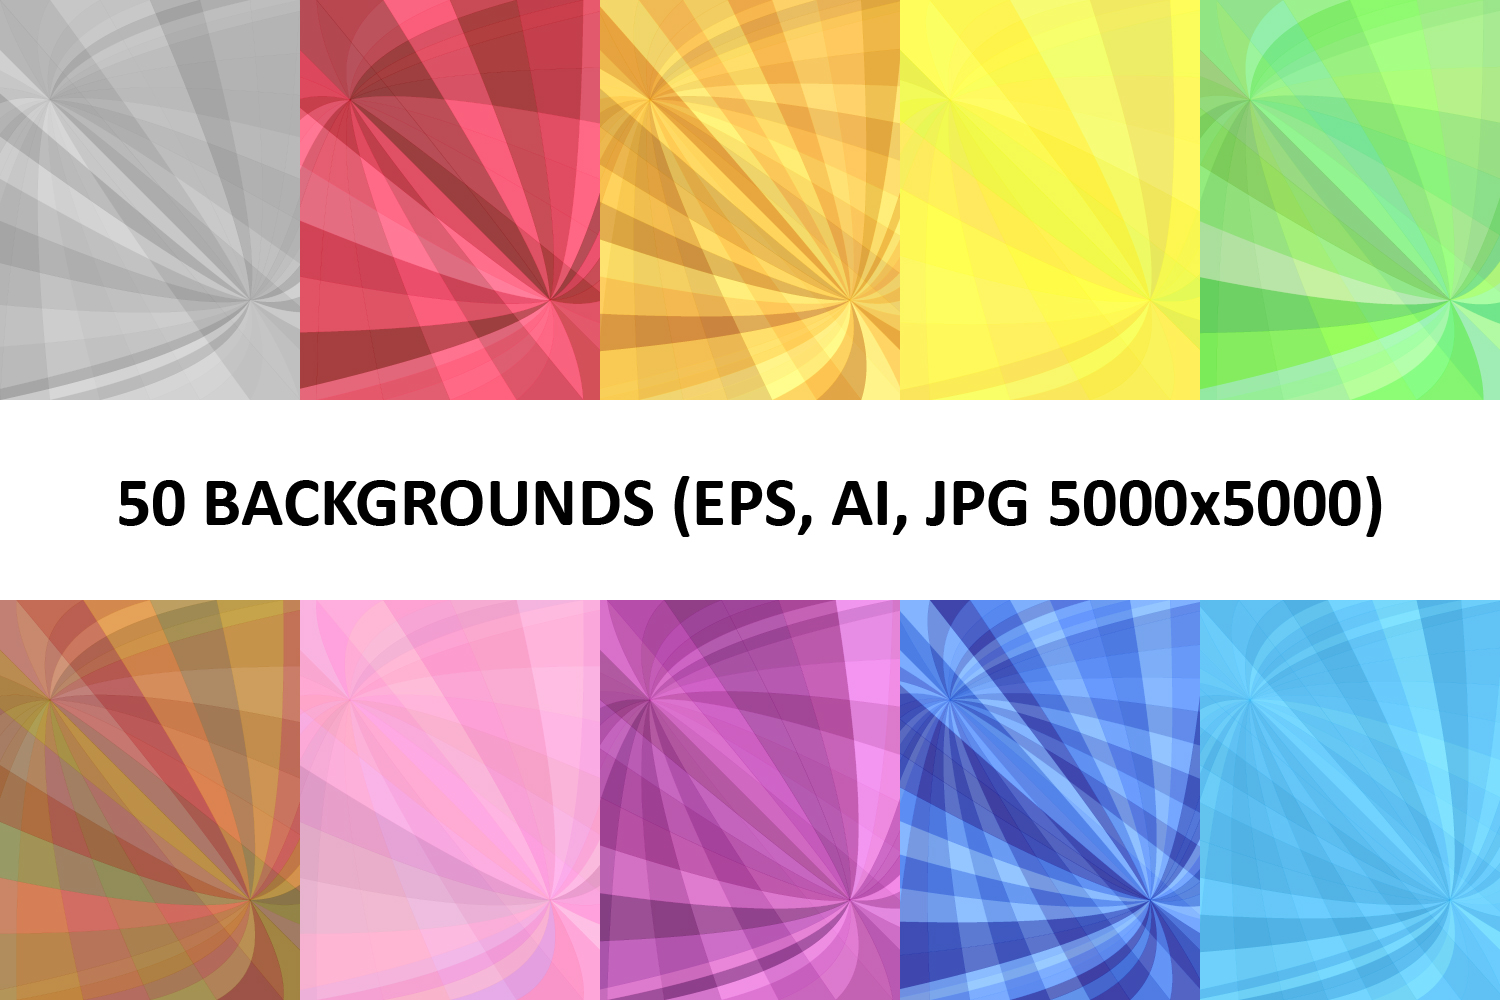 50 Curved Backgrounds (AI, EPS, JPG 5000x5000) example image 1